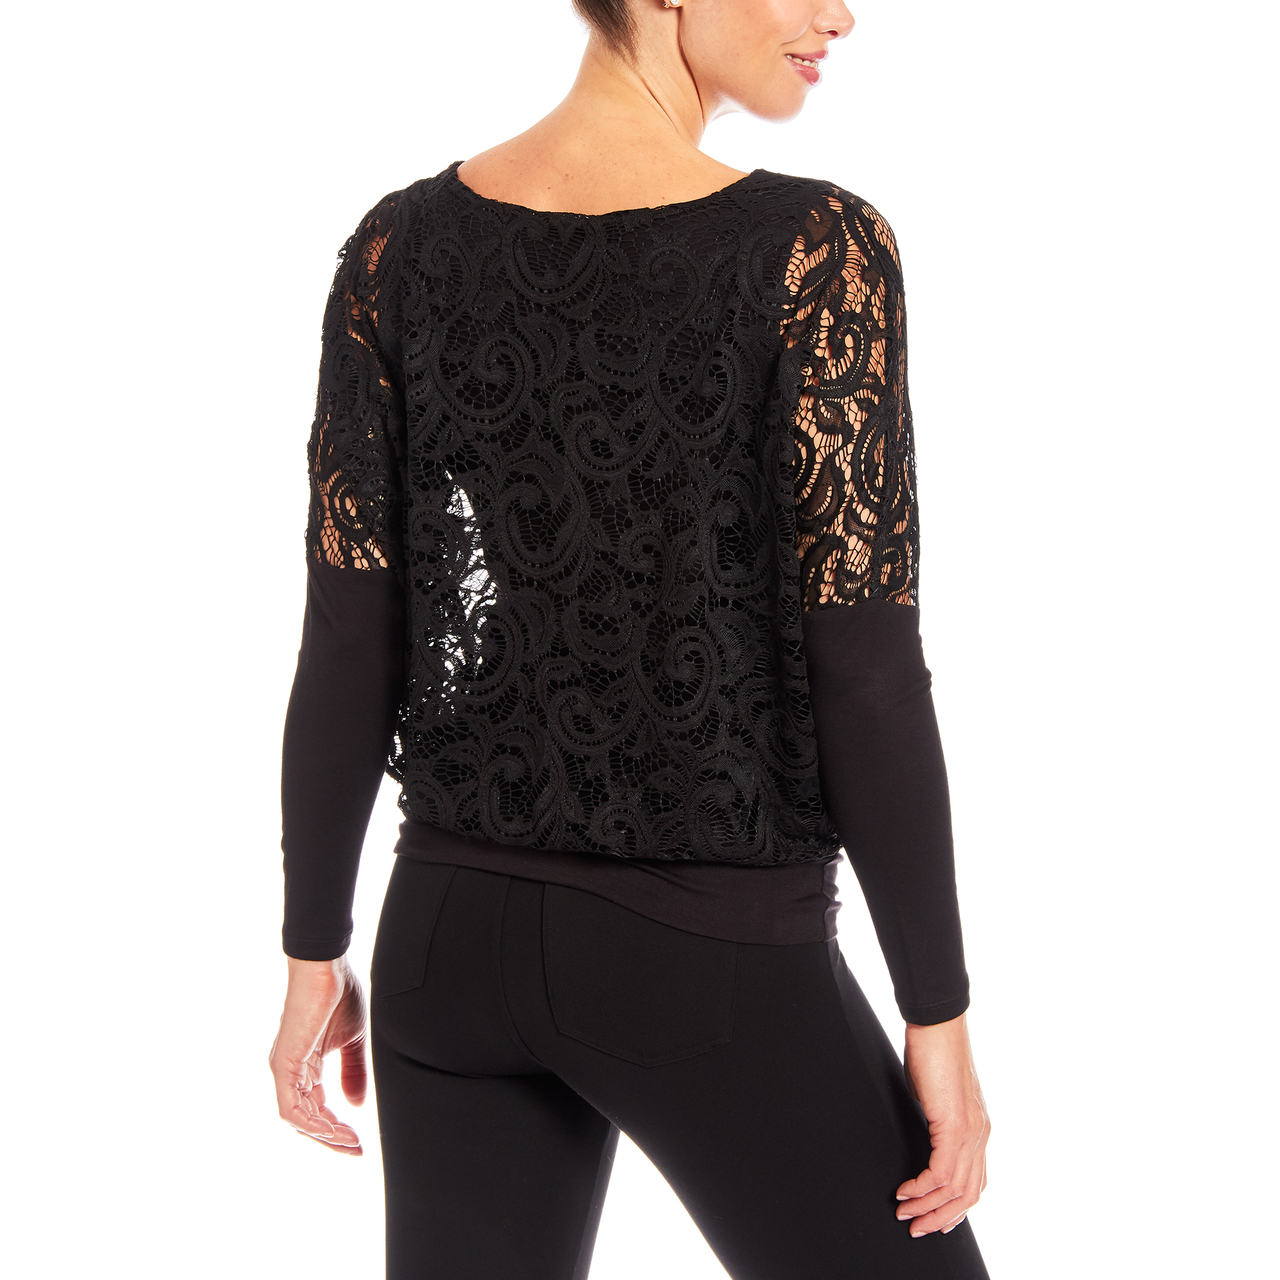 Dolman Long Sleeve Lace Top with Banded Knit Bottom In Black